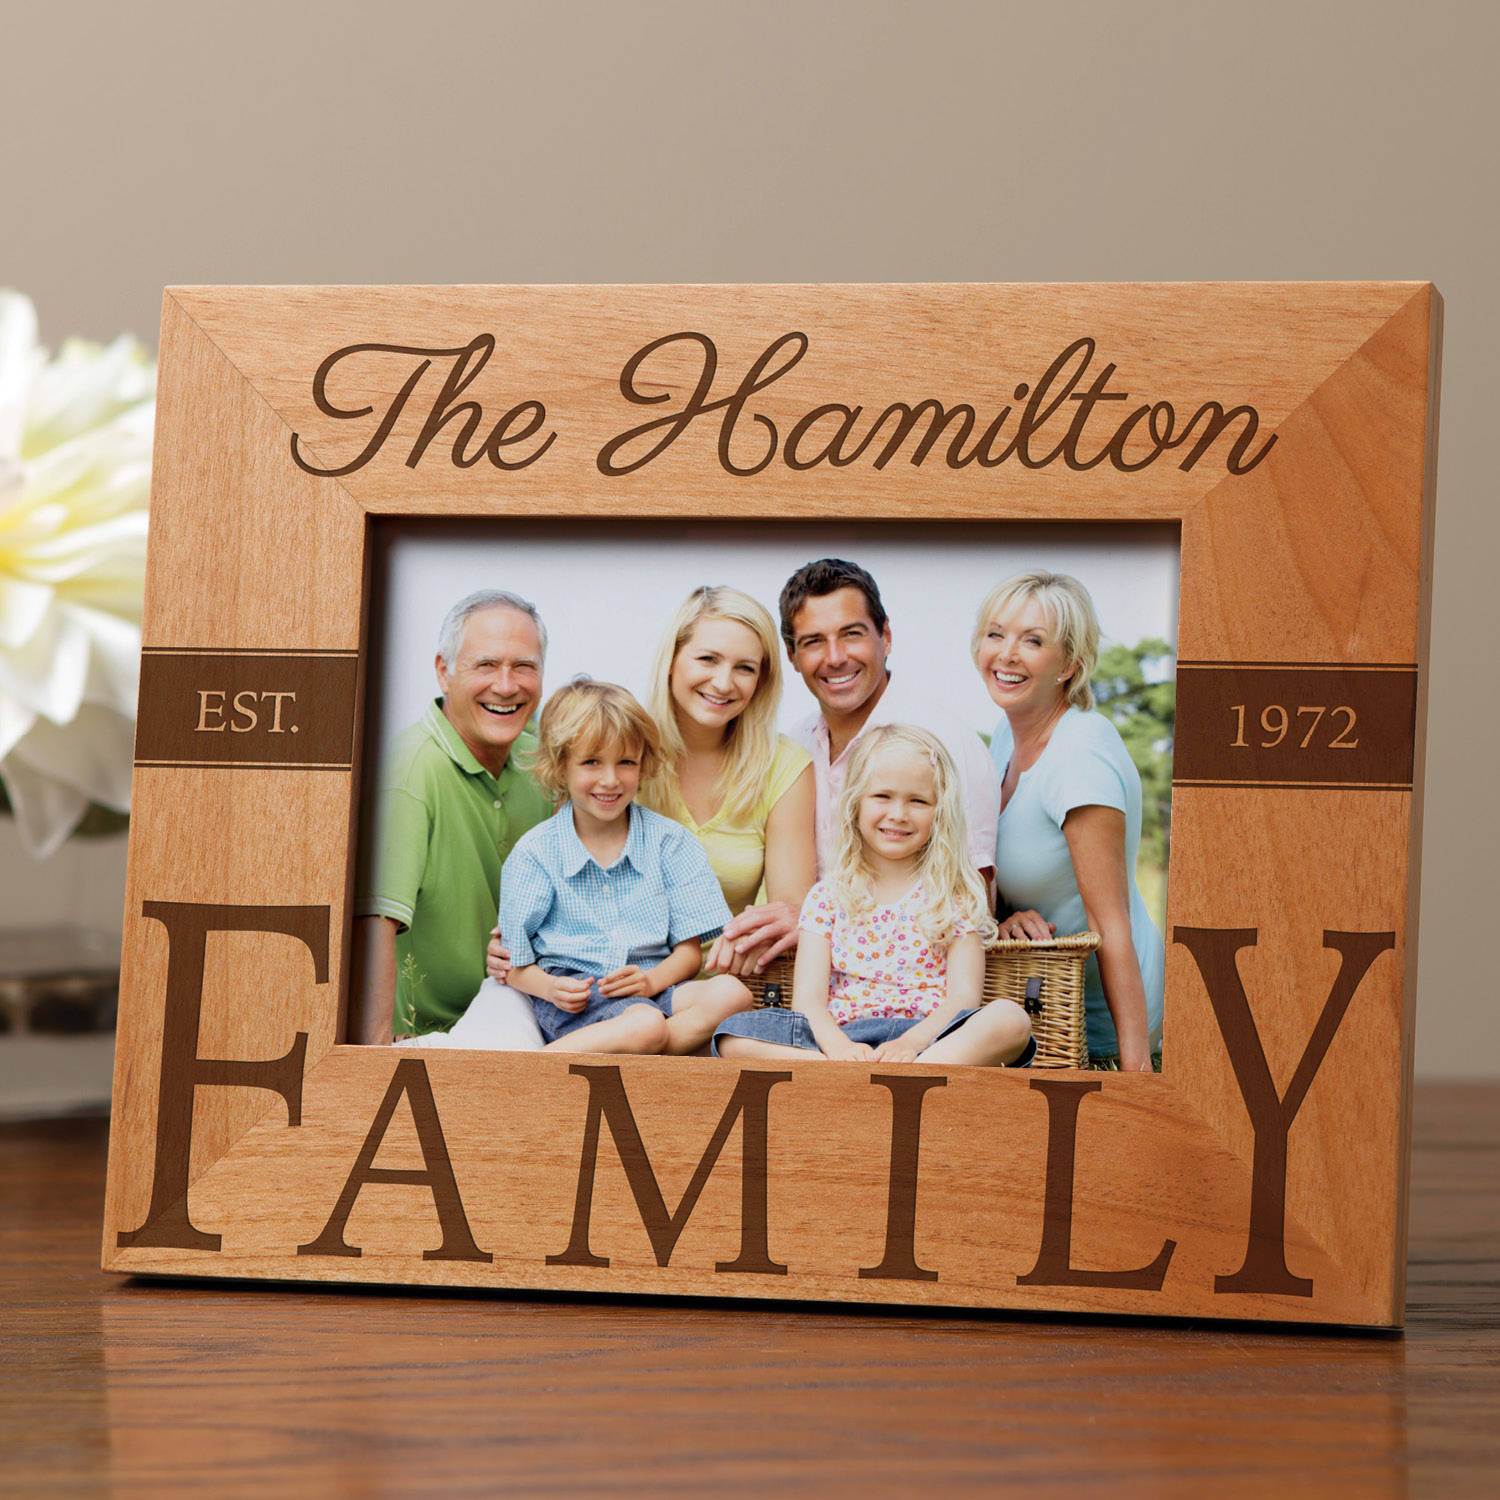 Our Family Personalized Wood Frame